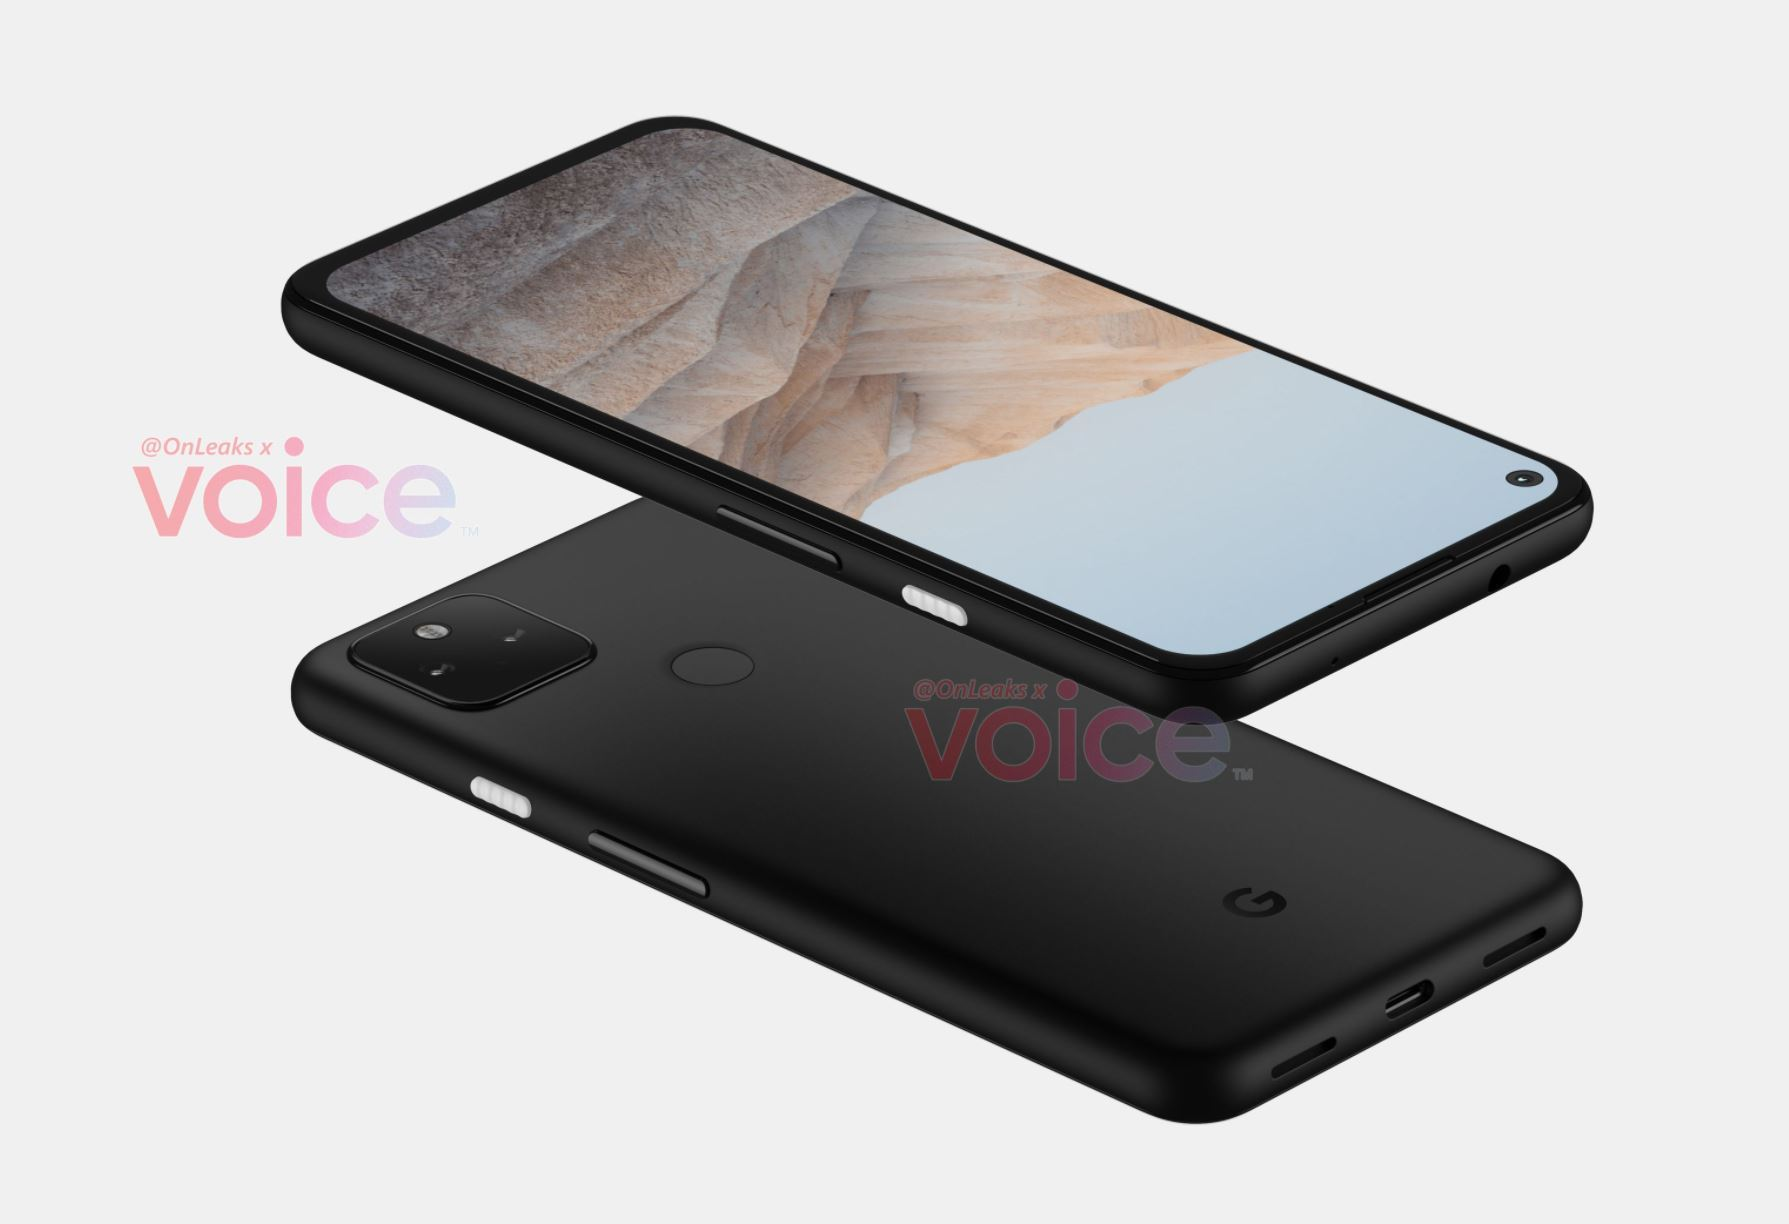 With the new Pixel 5a, Google is planning a bestselling smartphone